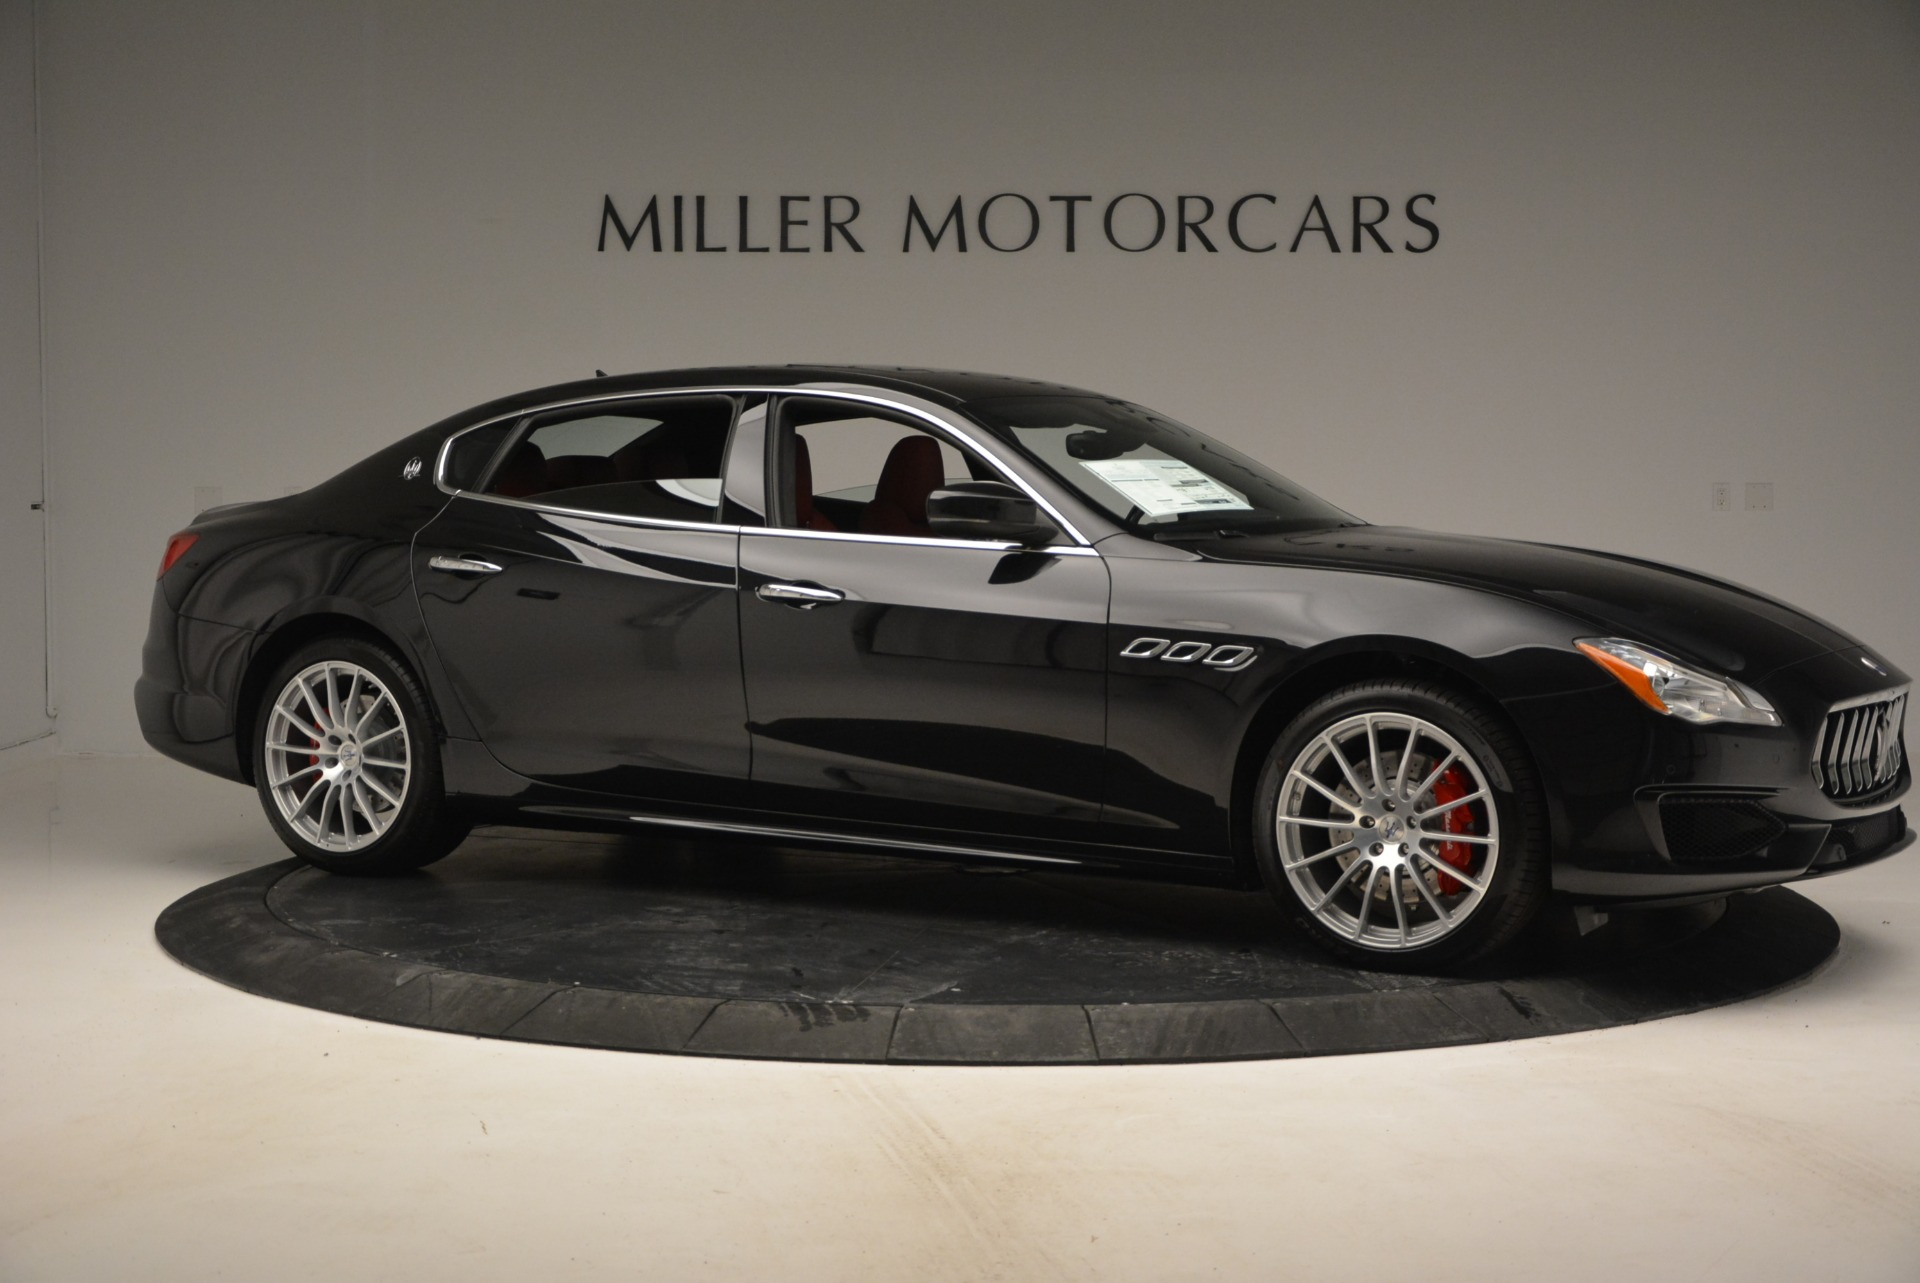 New 2017 Maserati Quattroporte S Q4 GranSport For Sale In Westport, CT 790_p10